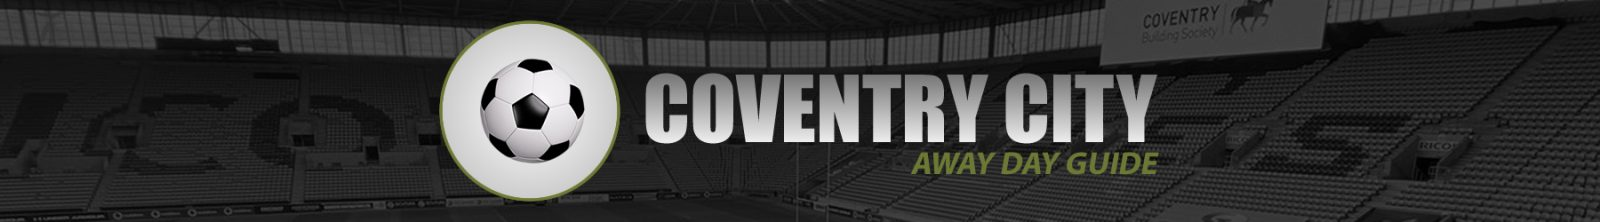 Coventry City Away